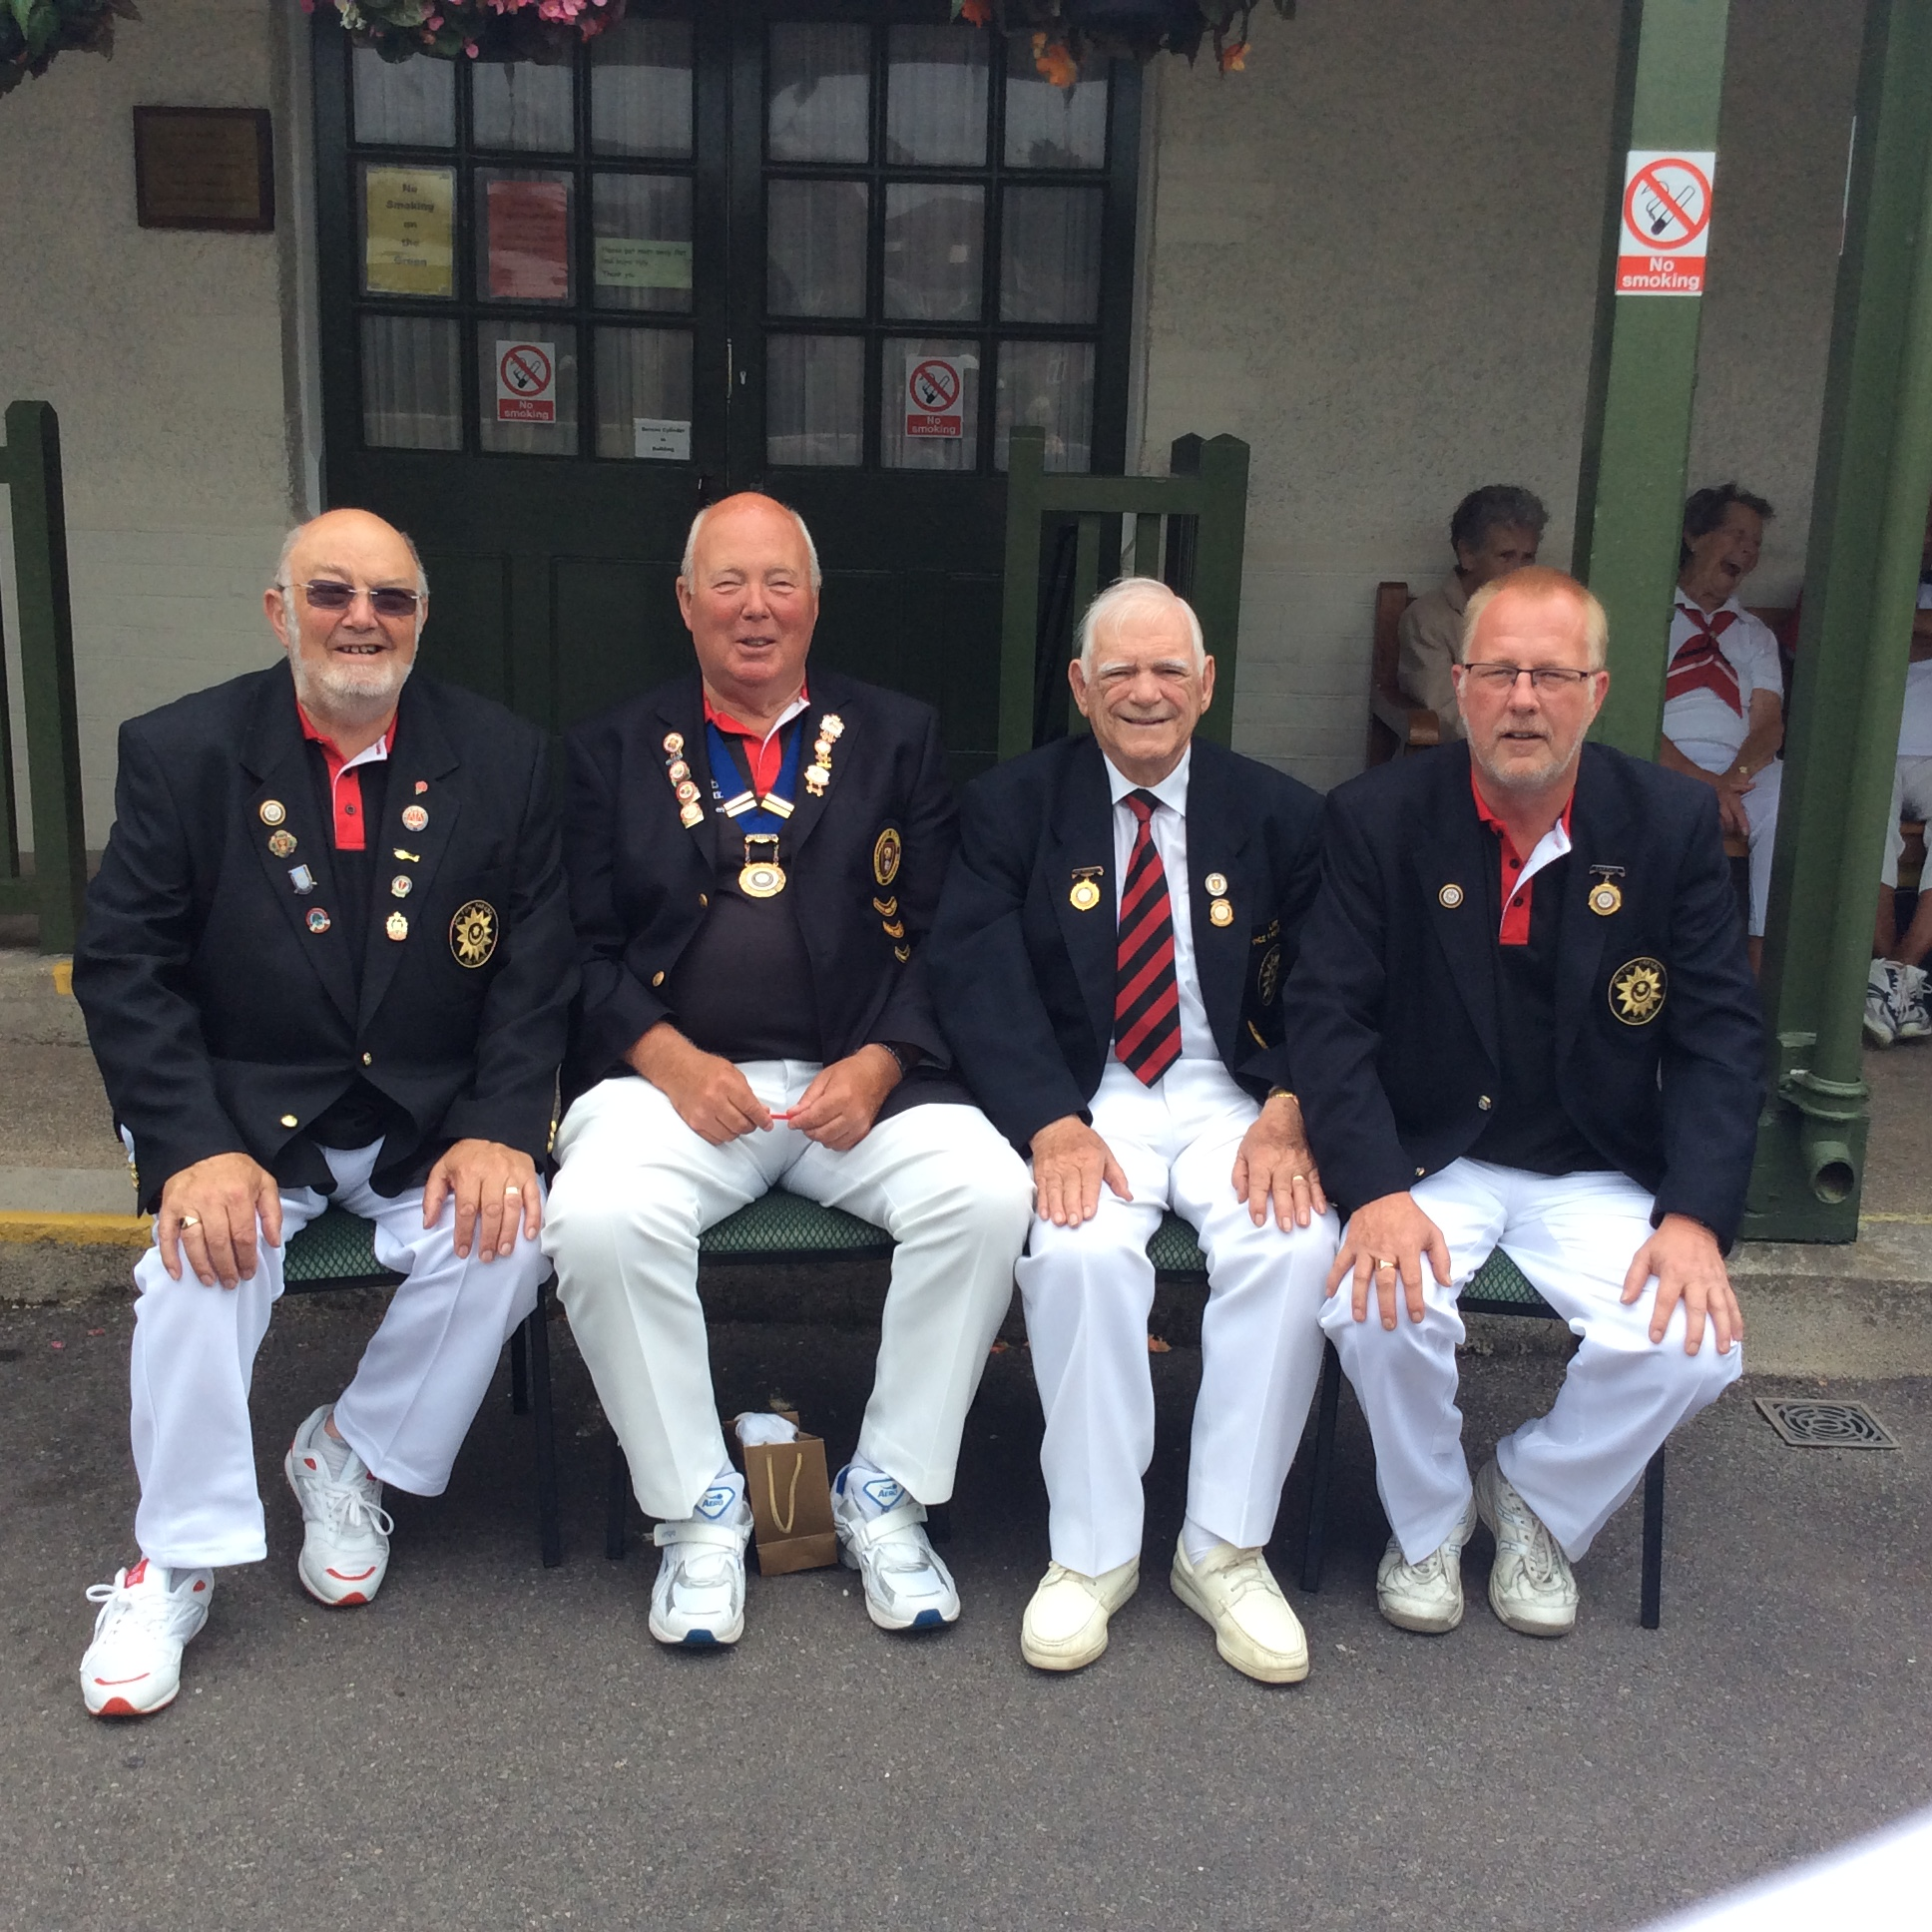 Left to Right Bryan Seymour (Hon. Treasurer) Dave Biggs (President) Dave Nicol (Hon. Secretary) Dave Brown (Captain)